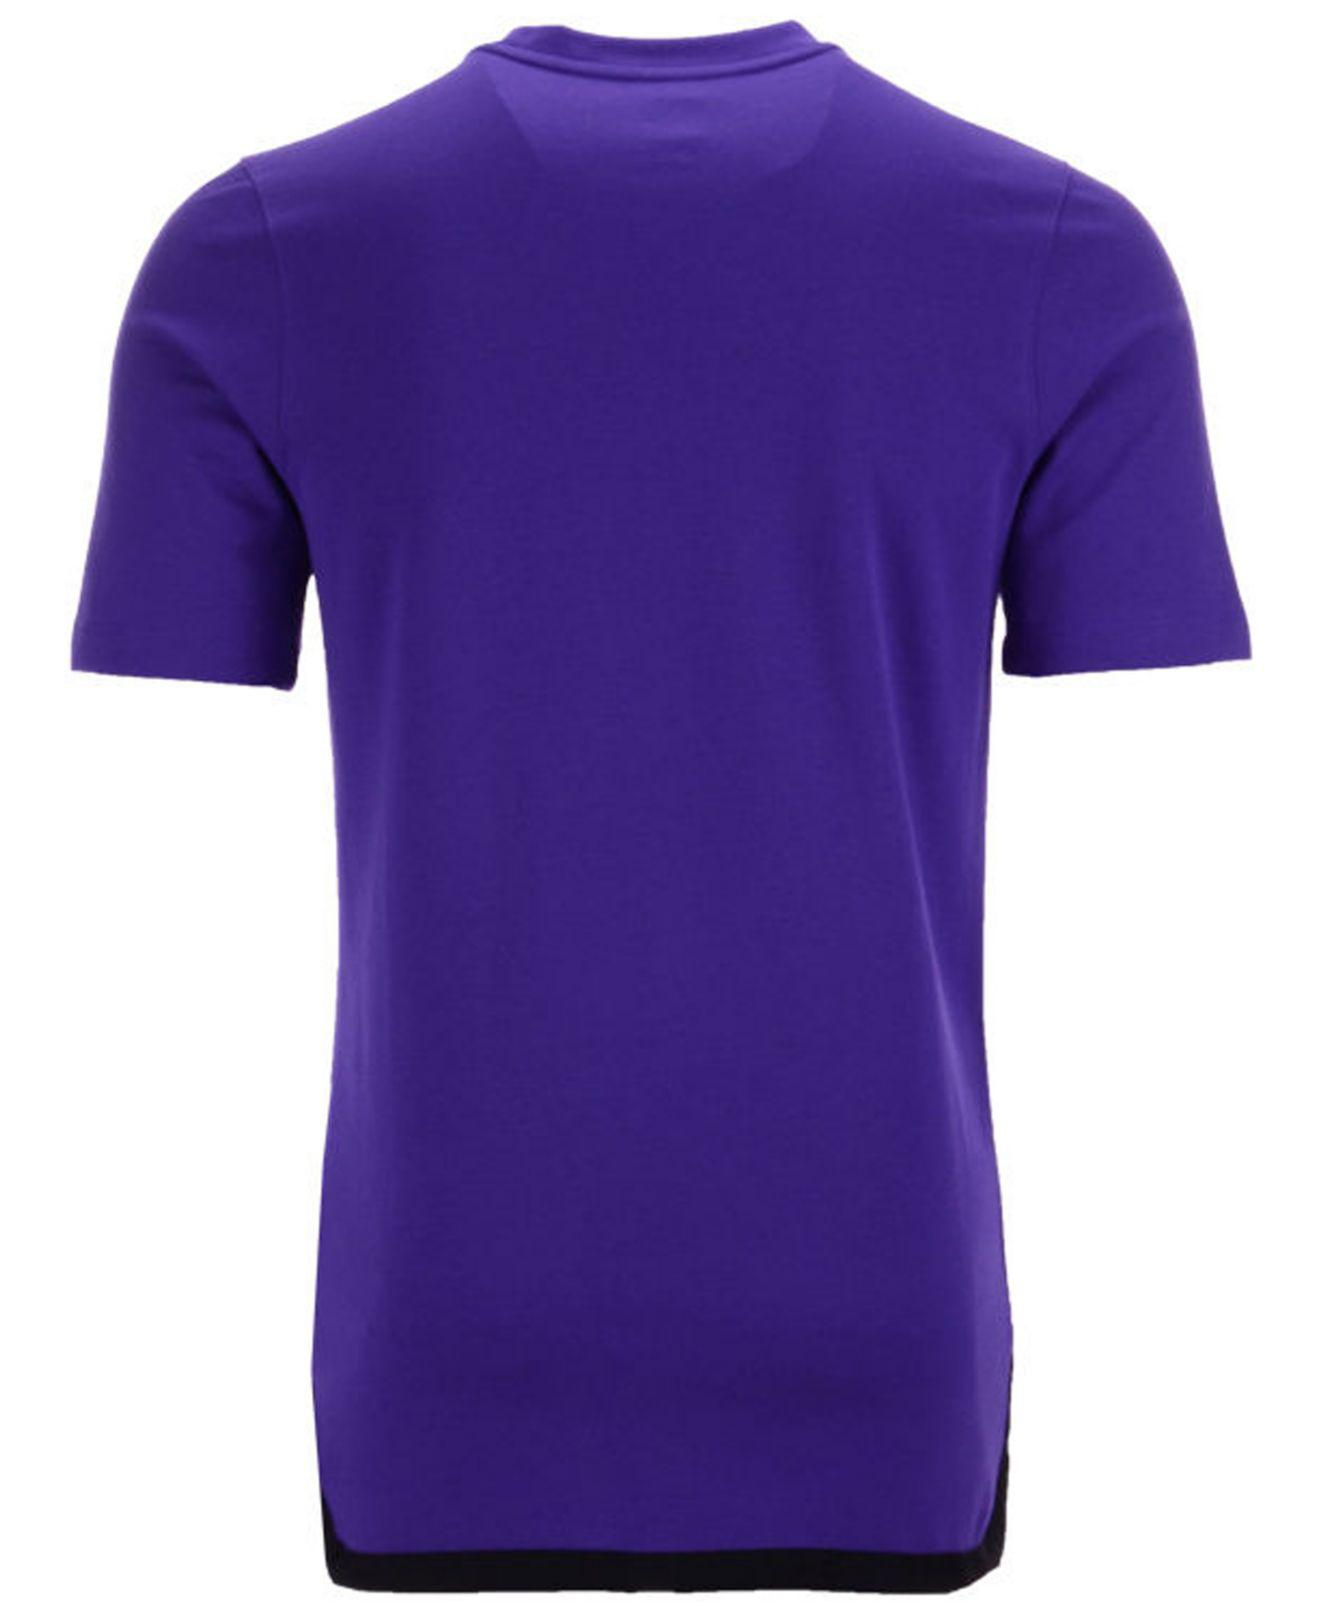 a721b48fb Lyst - Nike Los Angeles Lakers City Edition Shooting T-shirt in Purple for  Men